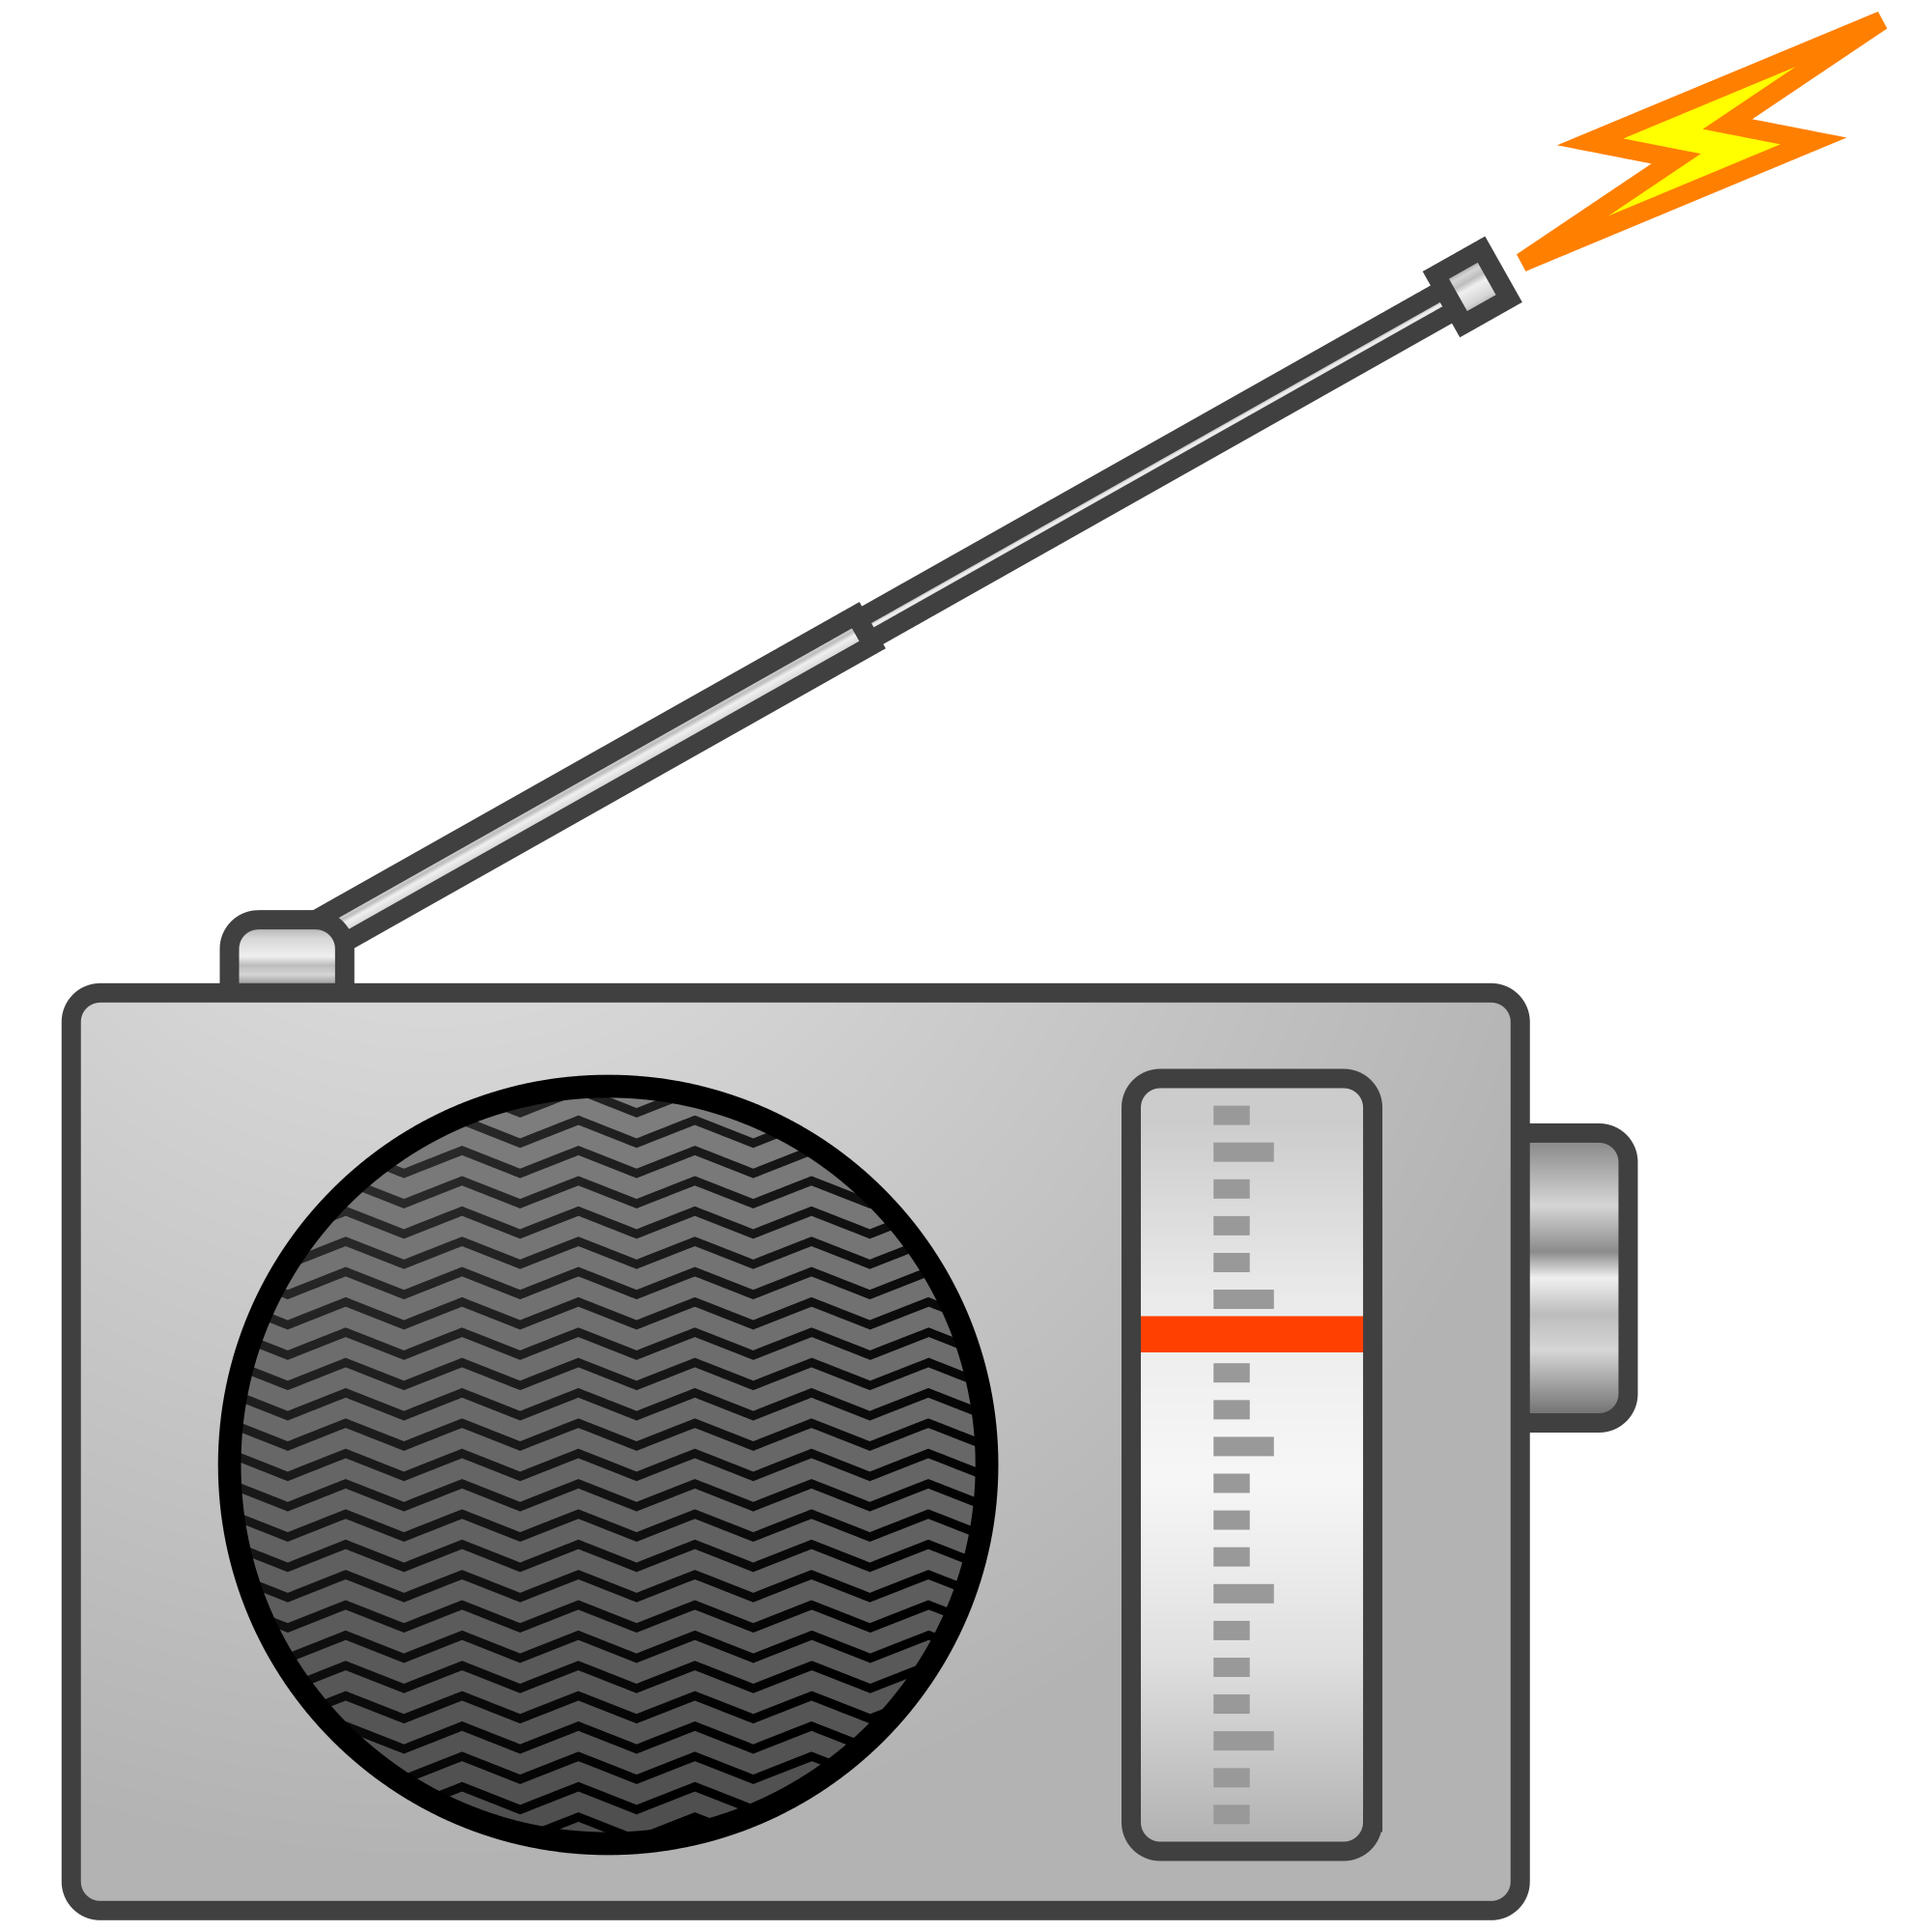 Radio png images. File icon svg wikimedia